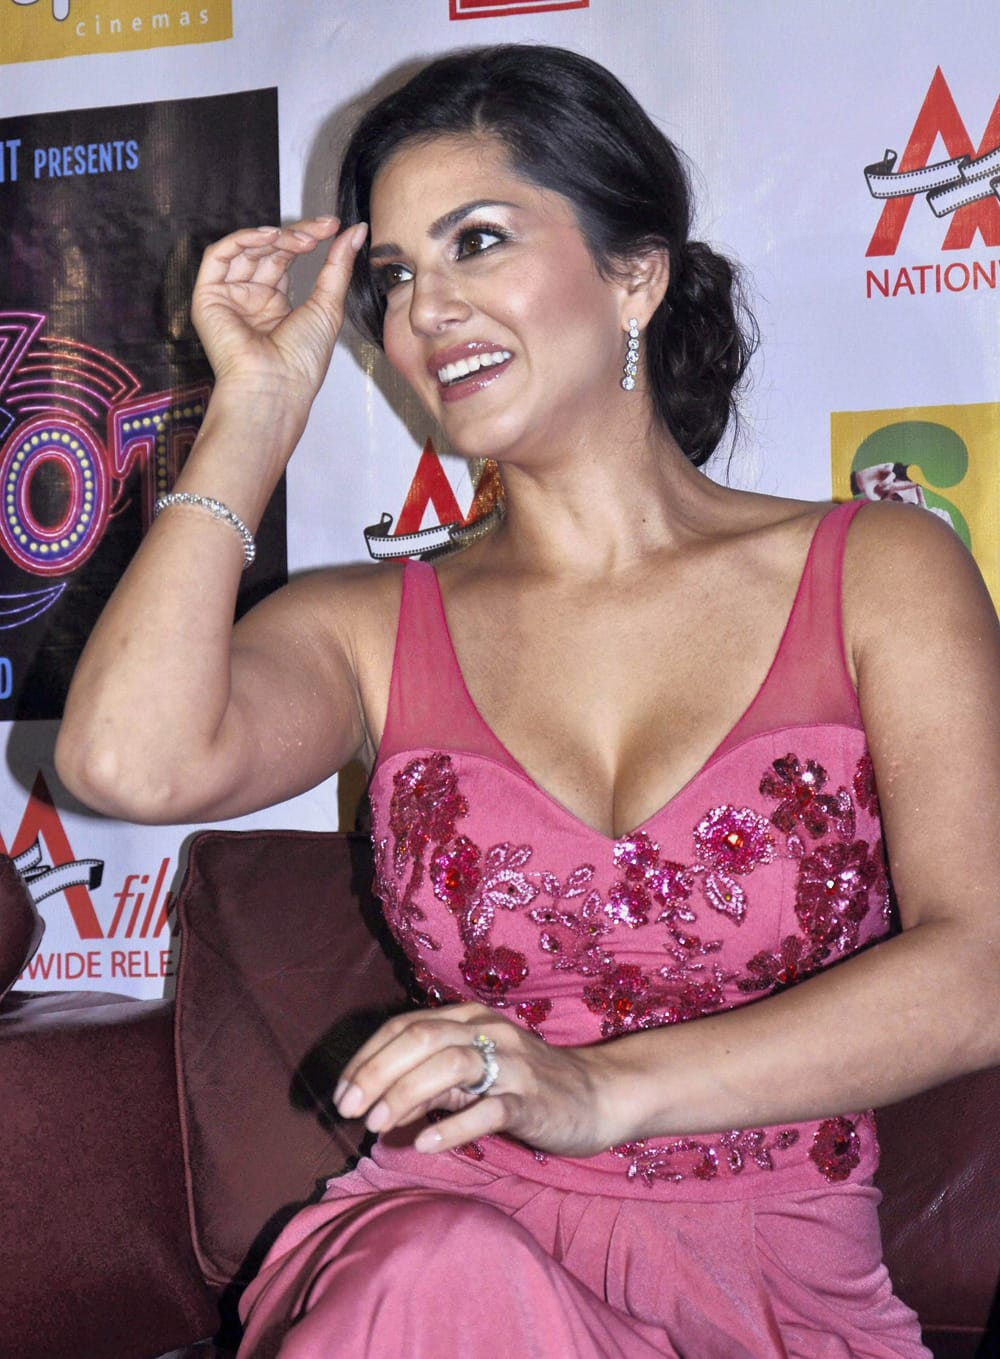 Sunny Leone during a promotional event for her upcoming film.